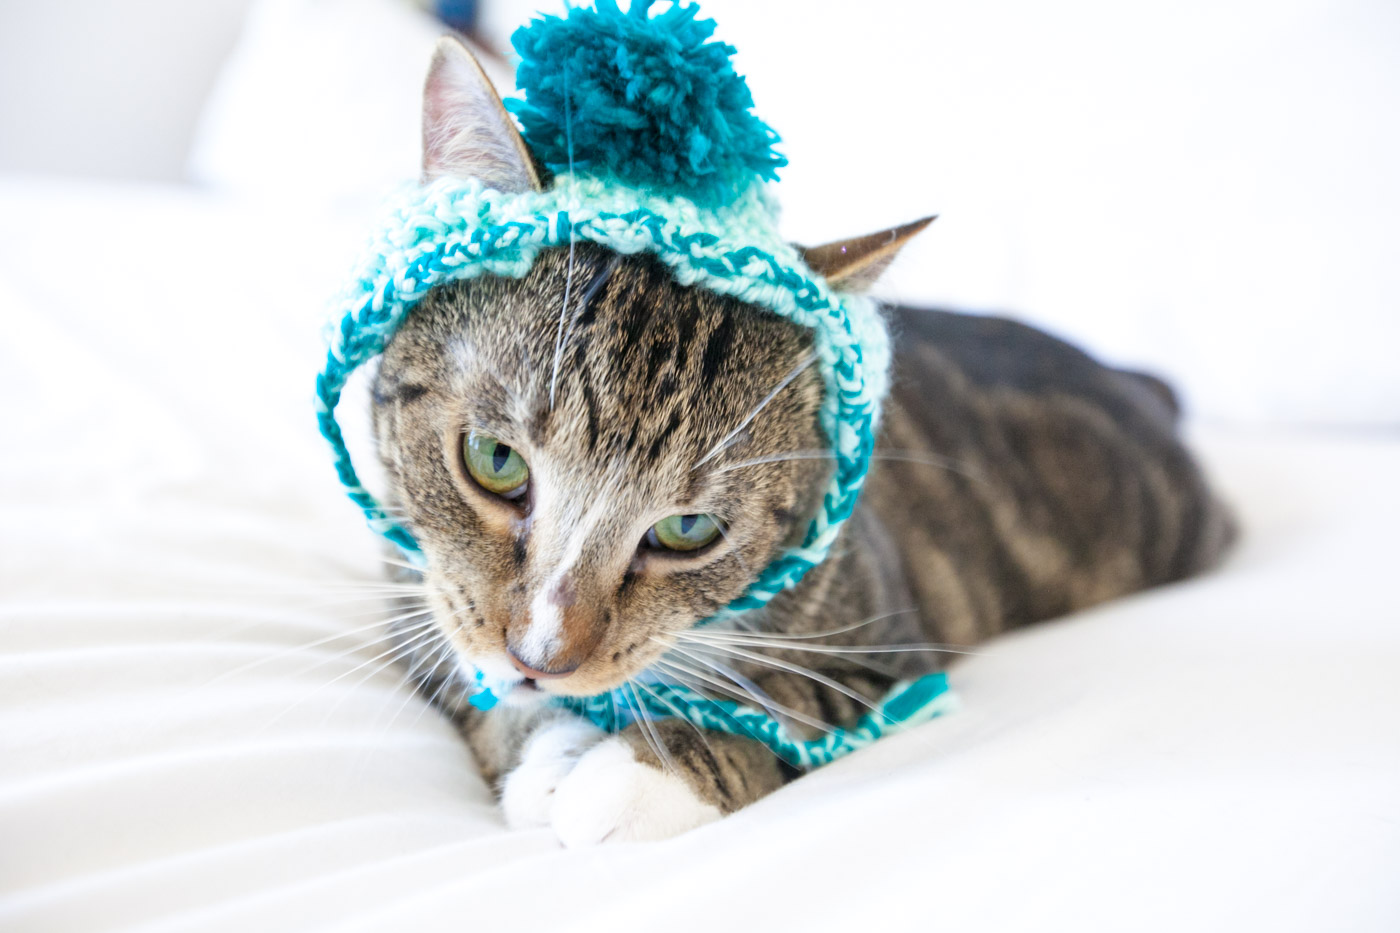 Ford the cat in a handknit hat for cats